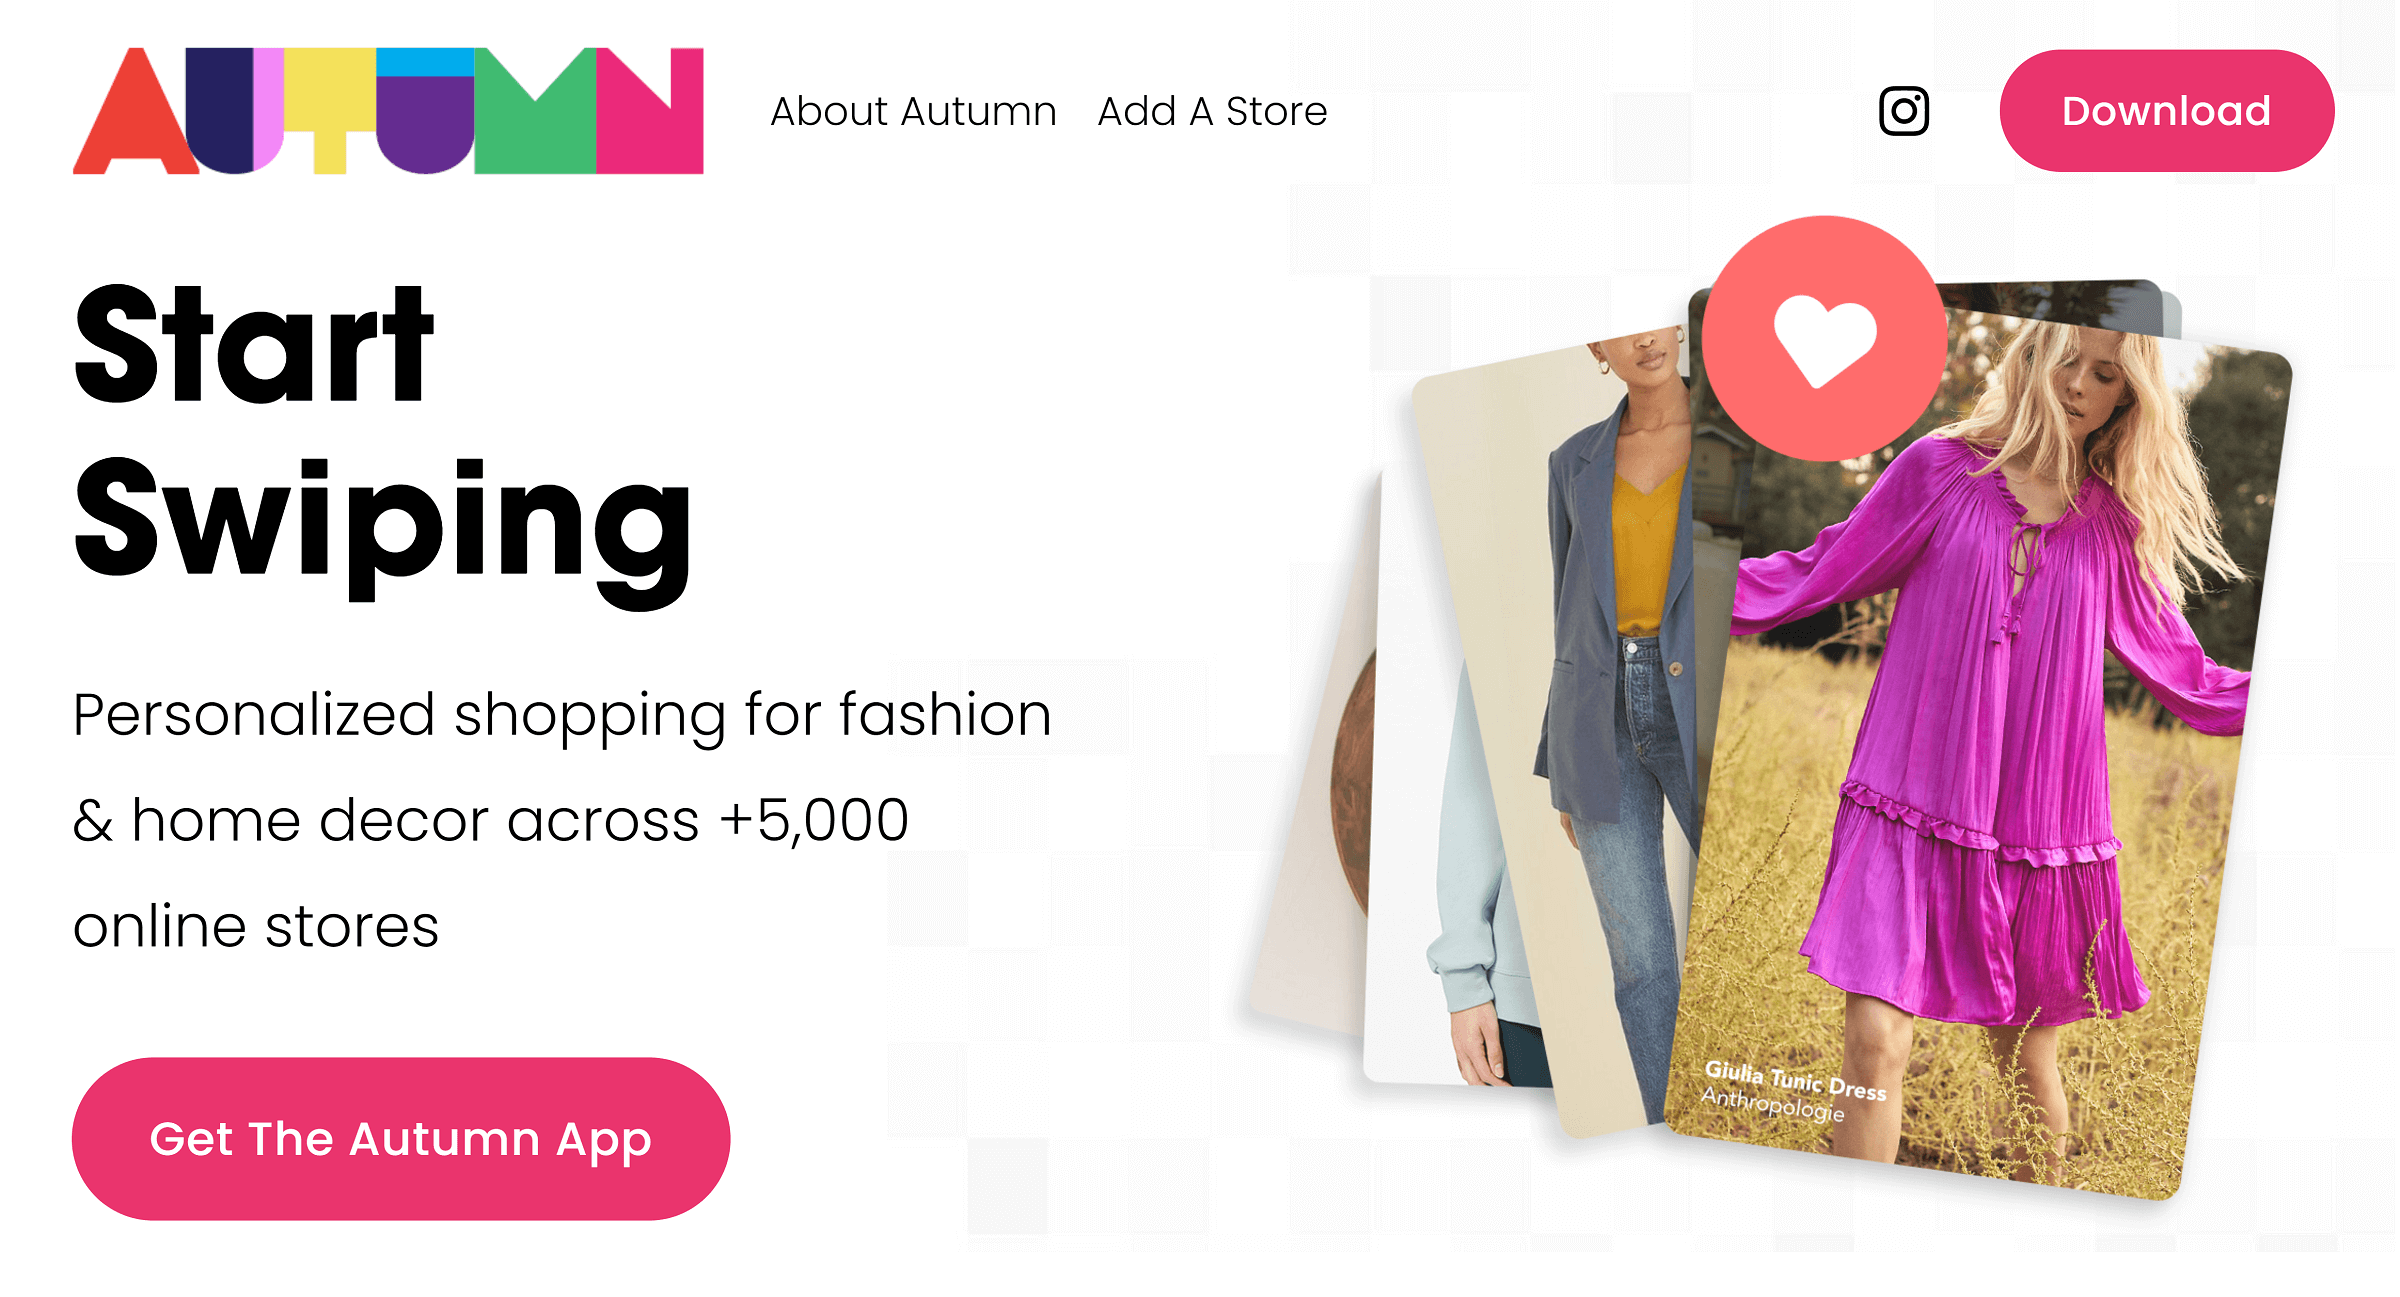 Autumn: Do All Your Shopping With Over 5,000 Stores in One Place